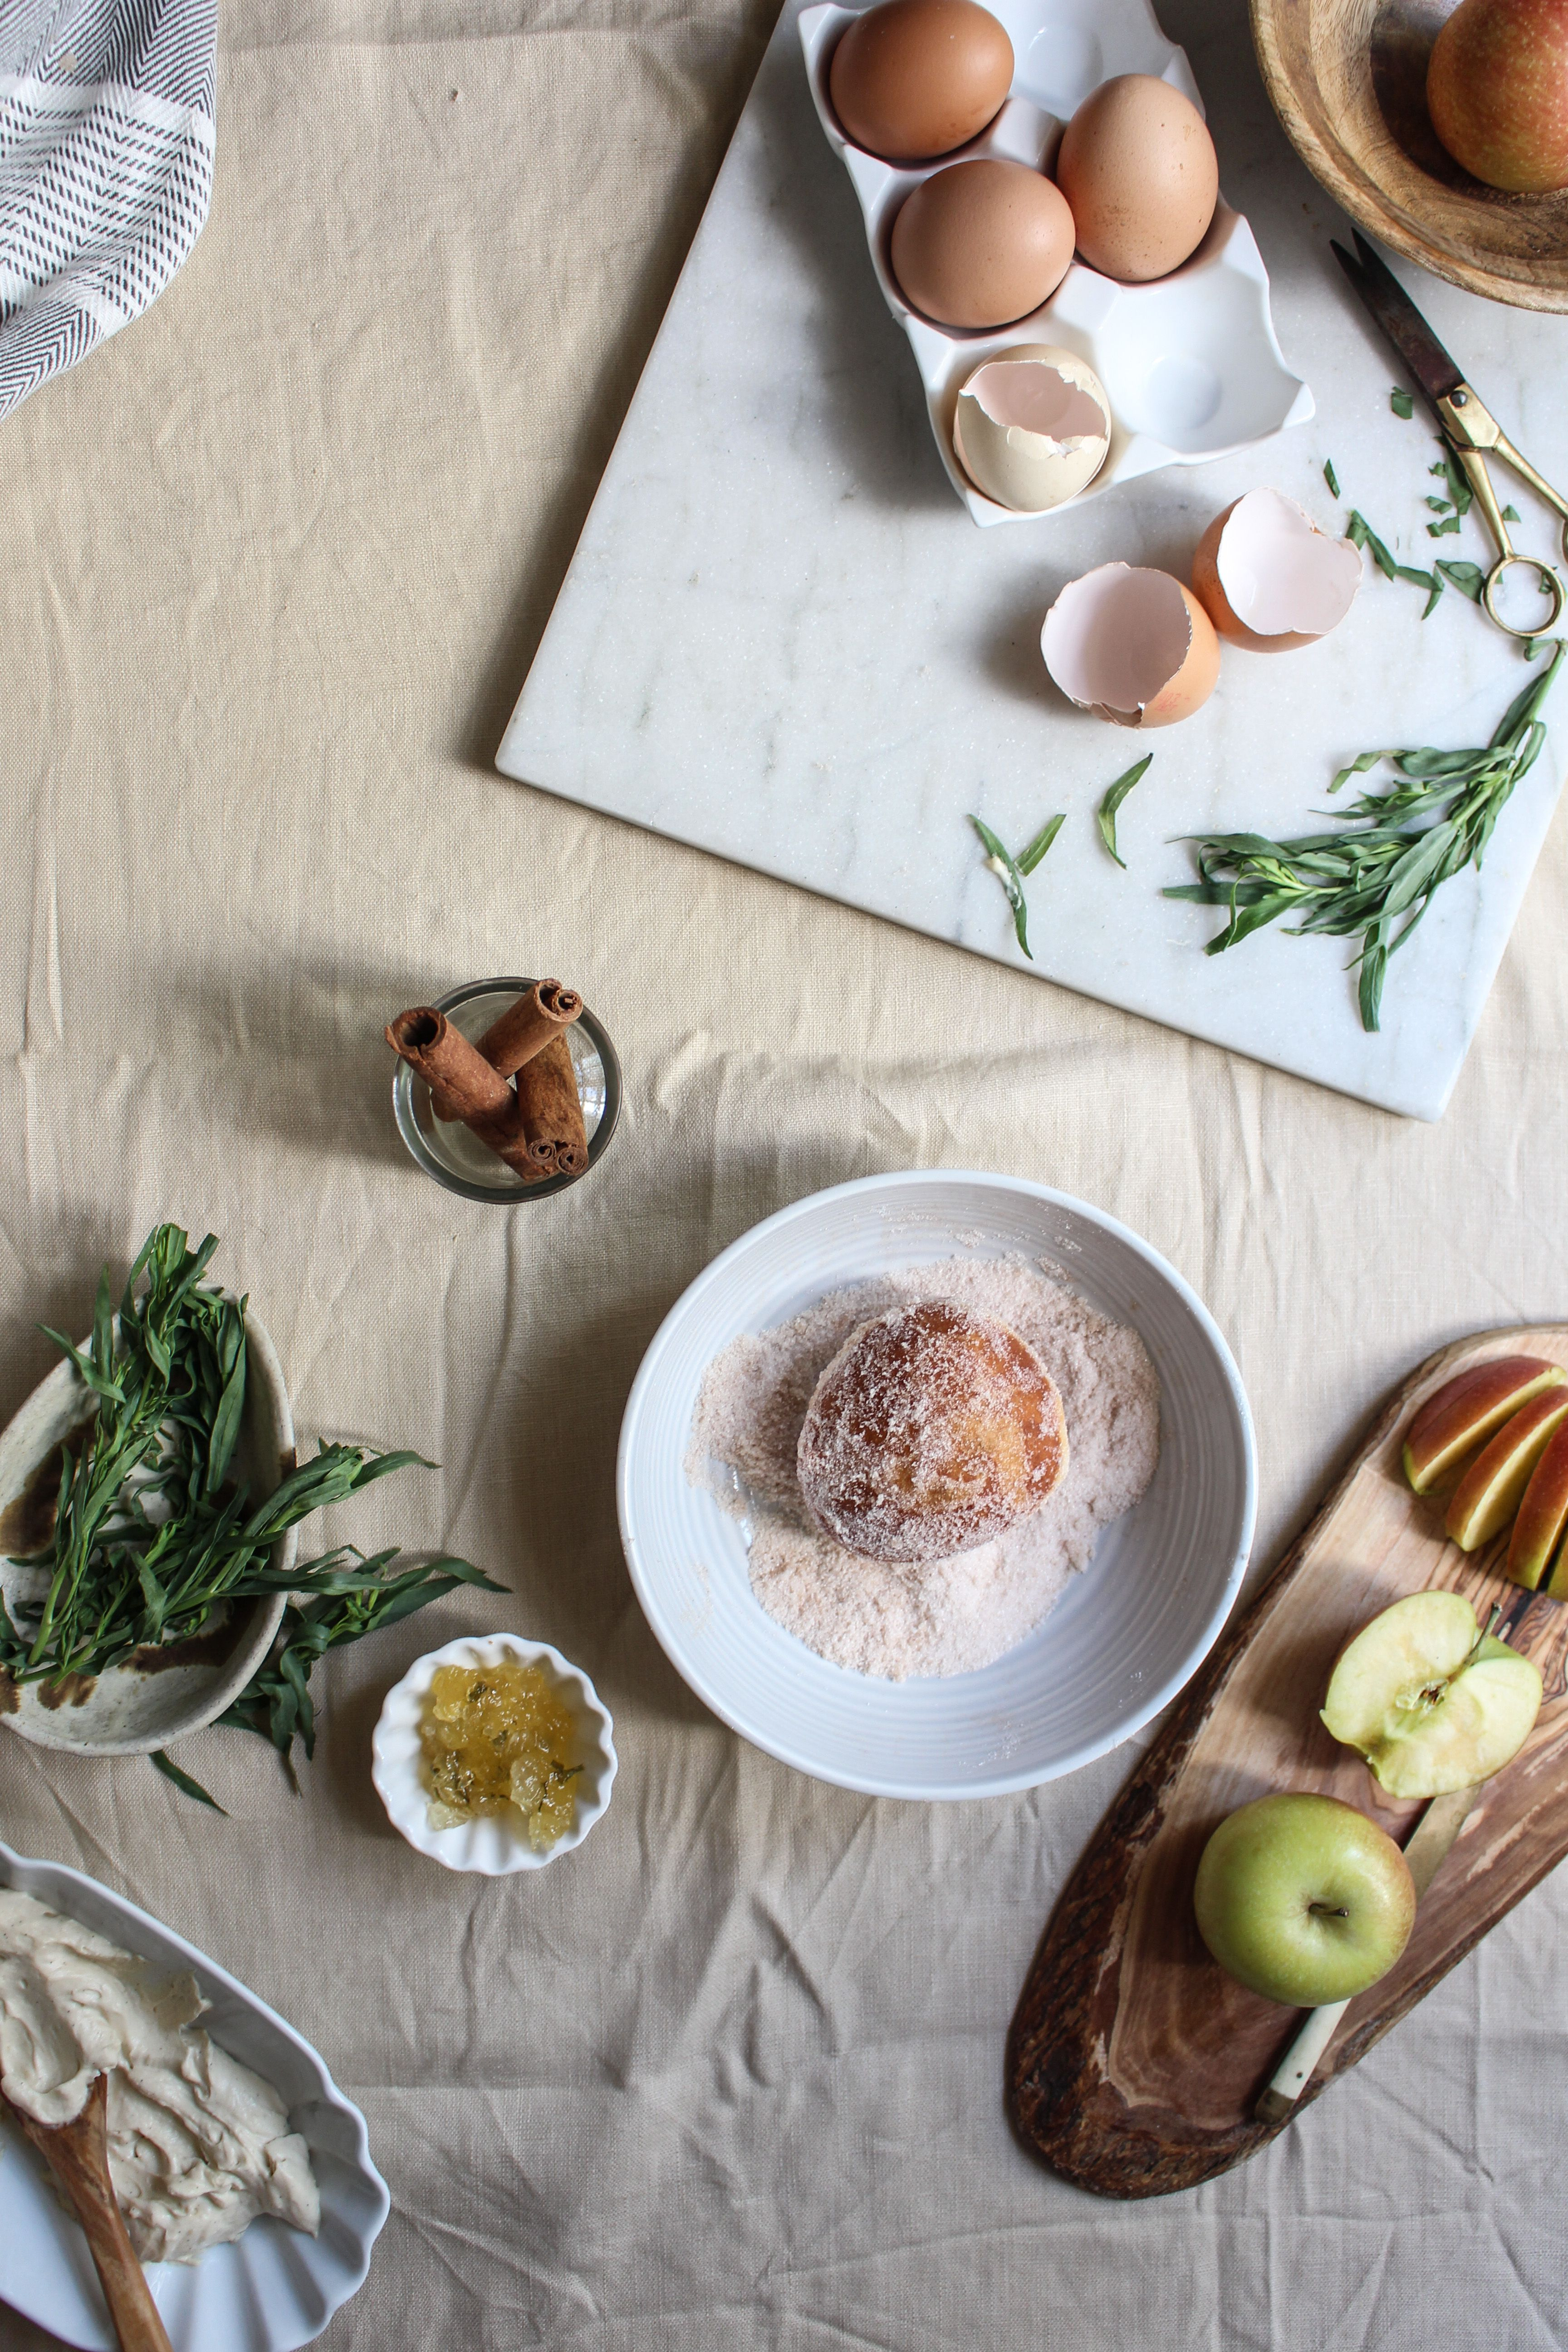 Doughnuts with apple tarragon compote and brown sugar pastry cream.